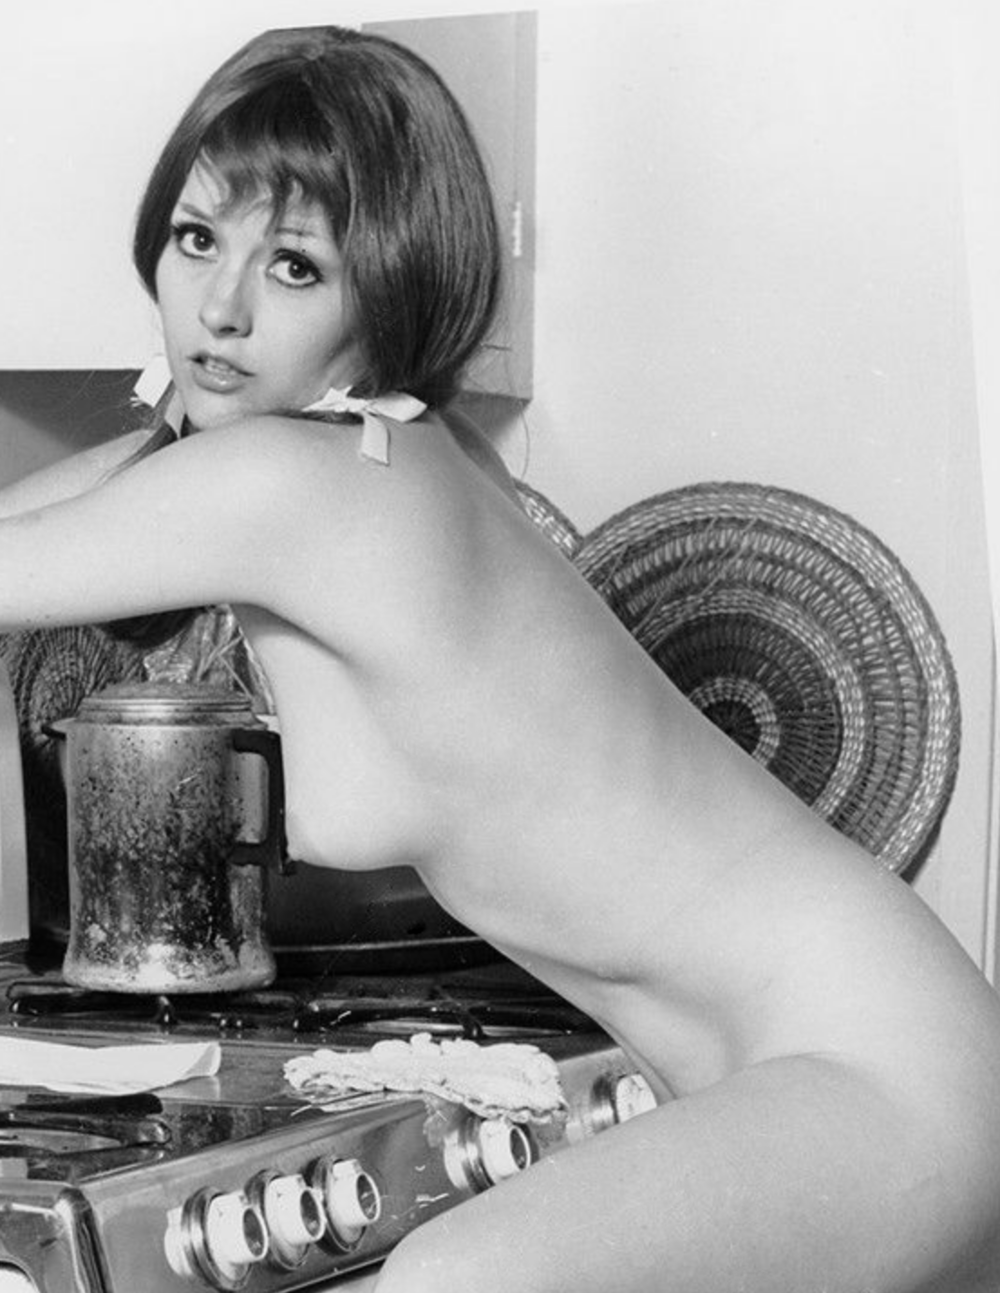 06 Vintage amateur cooking naked.png